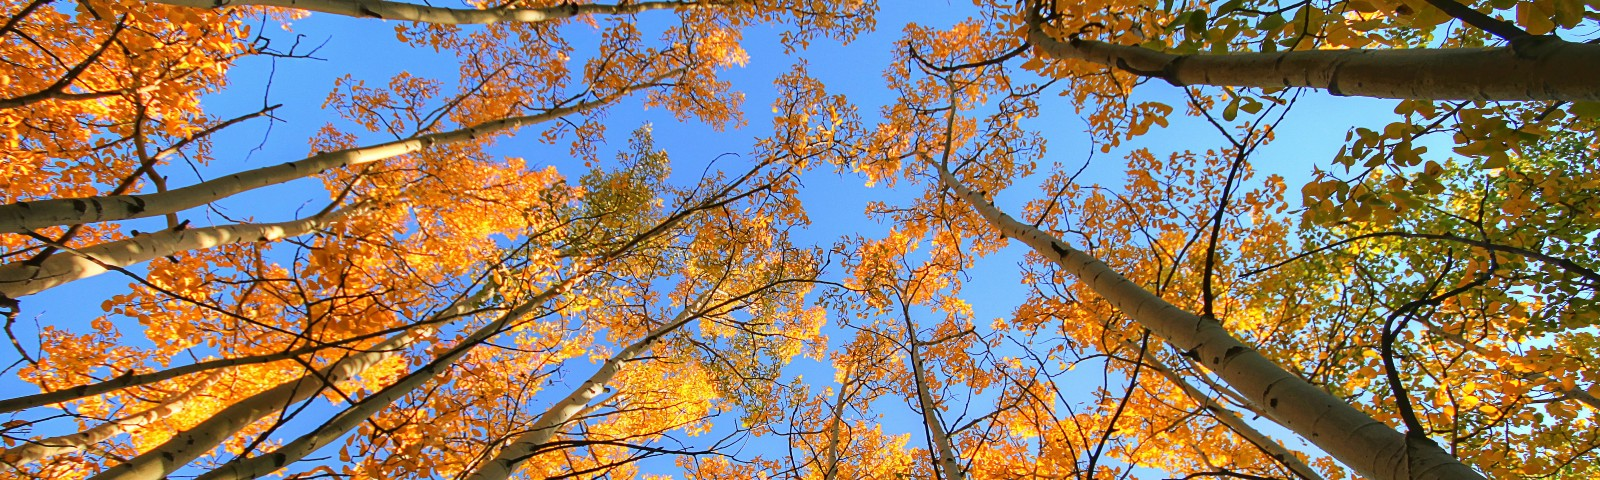 Canopy of trees in autumn